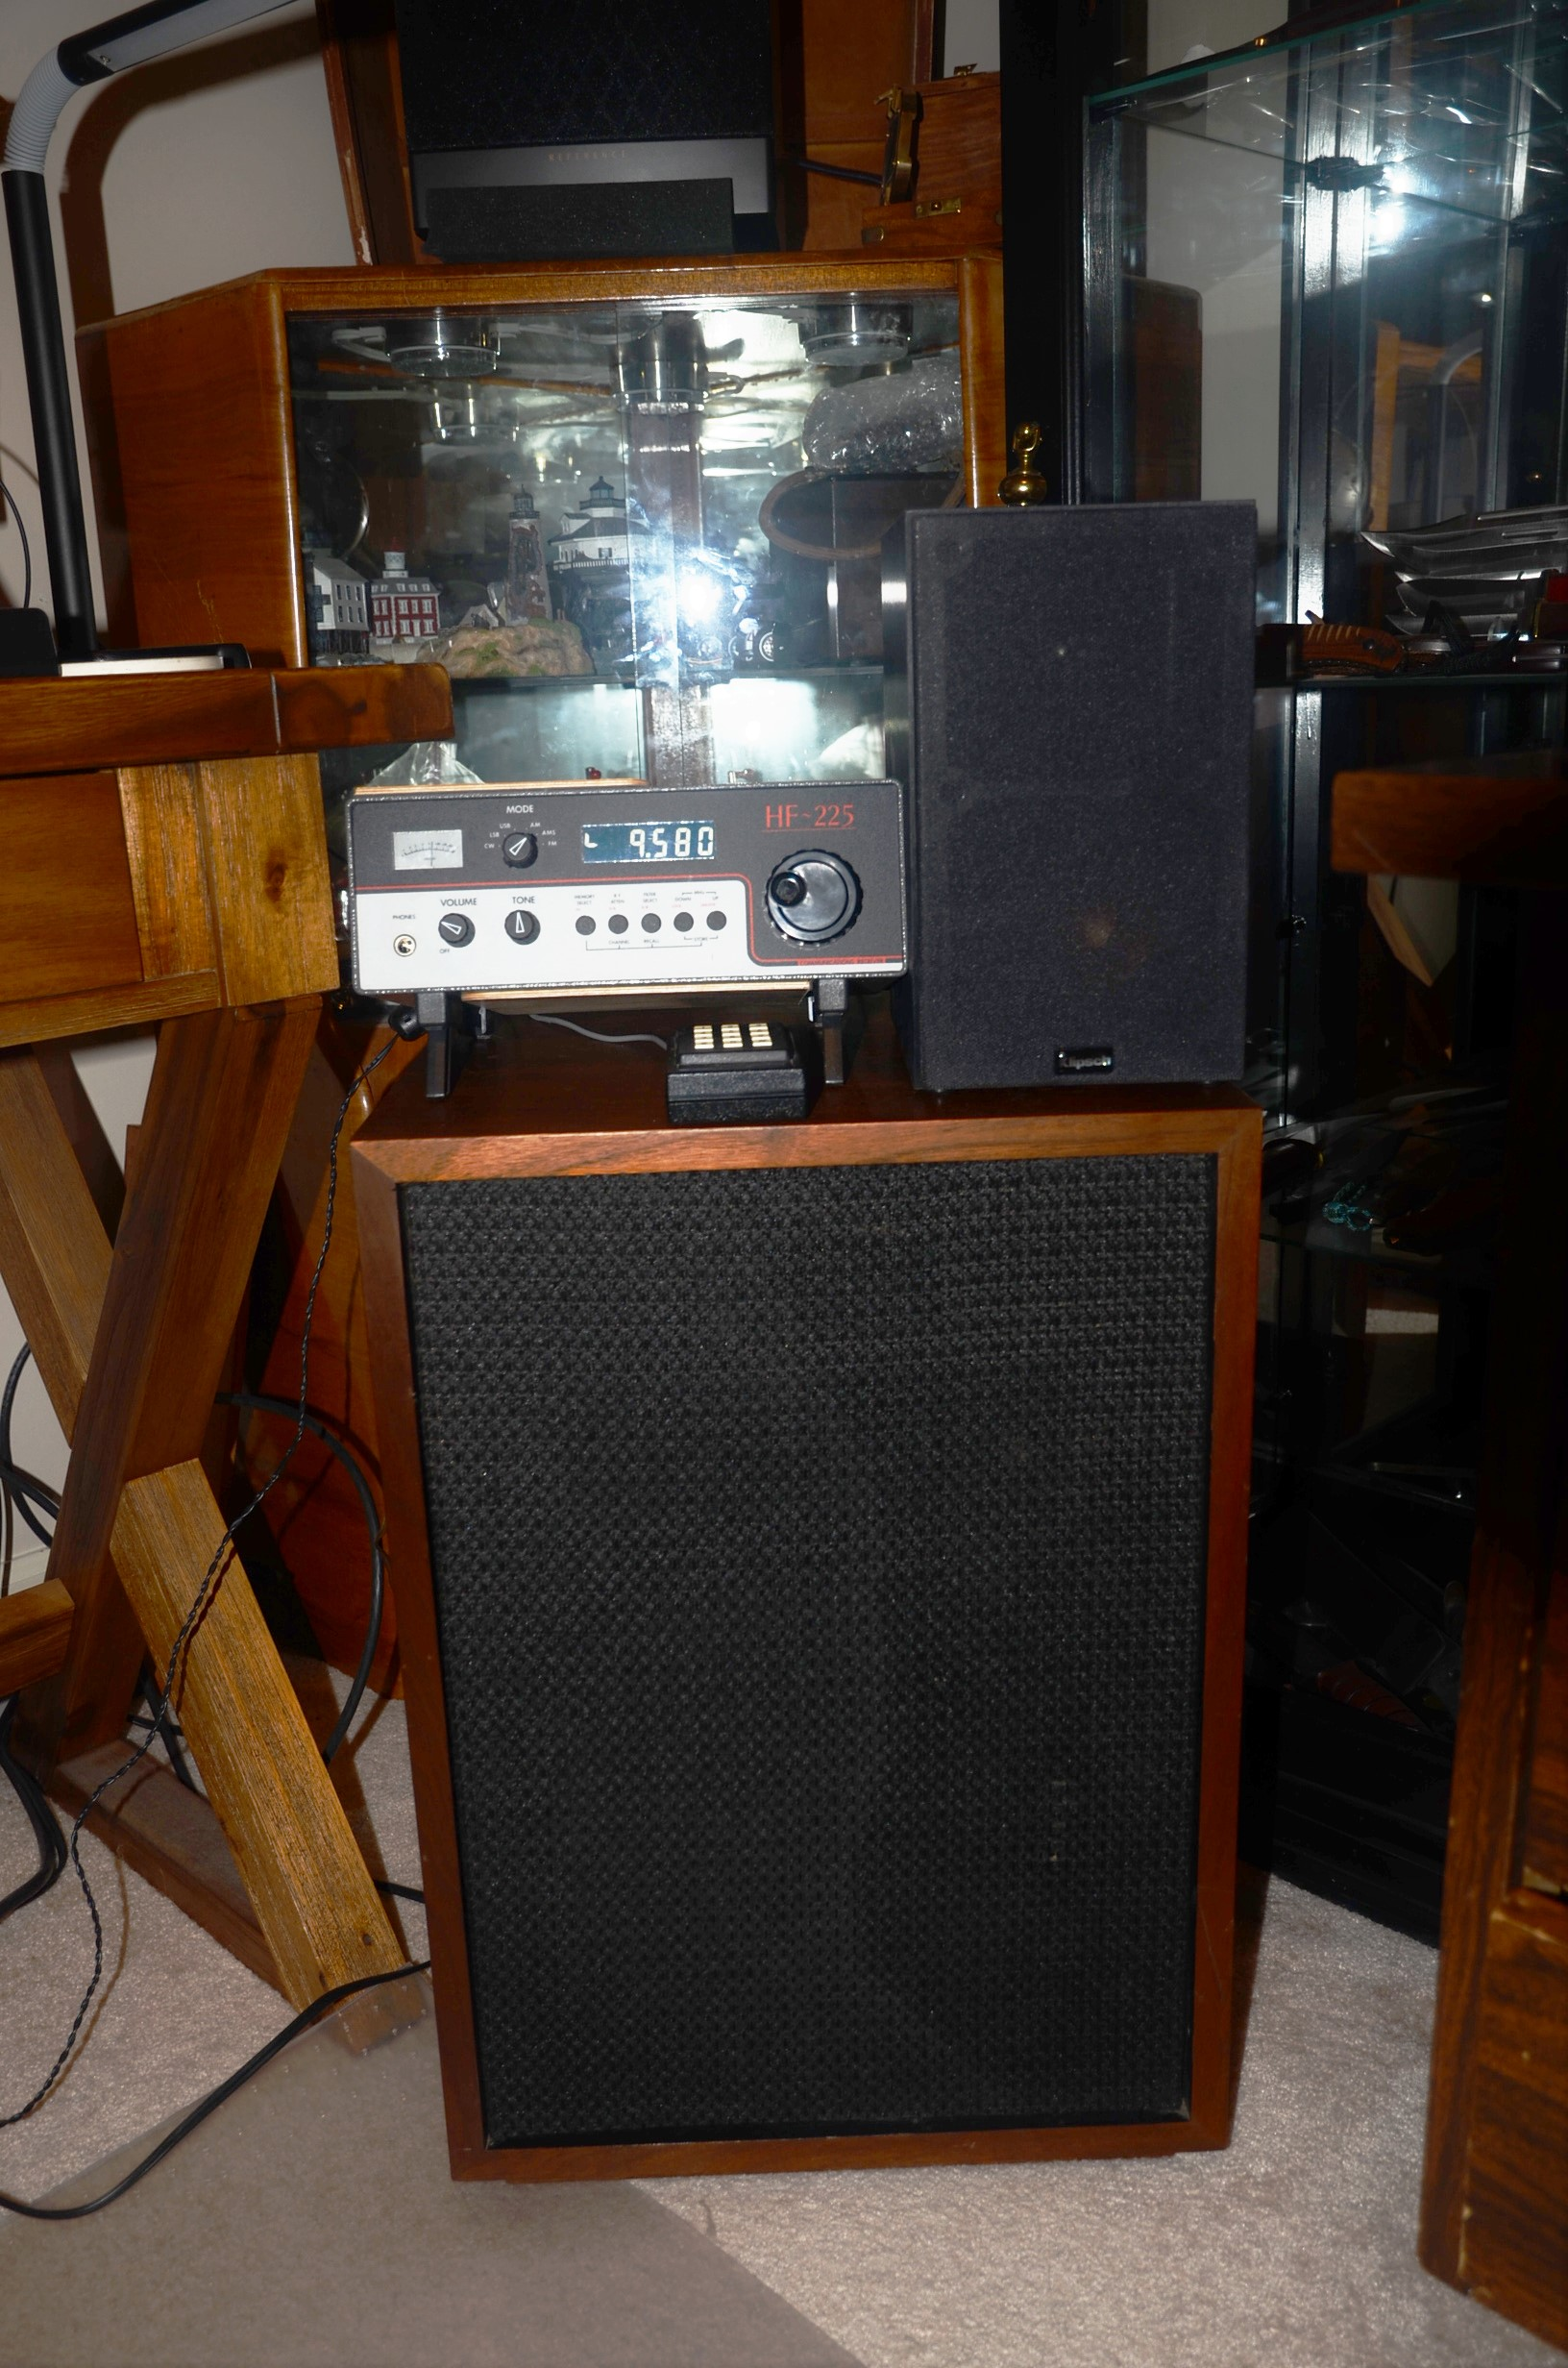 It Was Tuned To Radio Australia On 9580 KHz Which I Had First Listened In 1962 3 Quit Broadcasting Shortwave The End Of January This Year